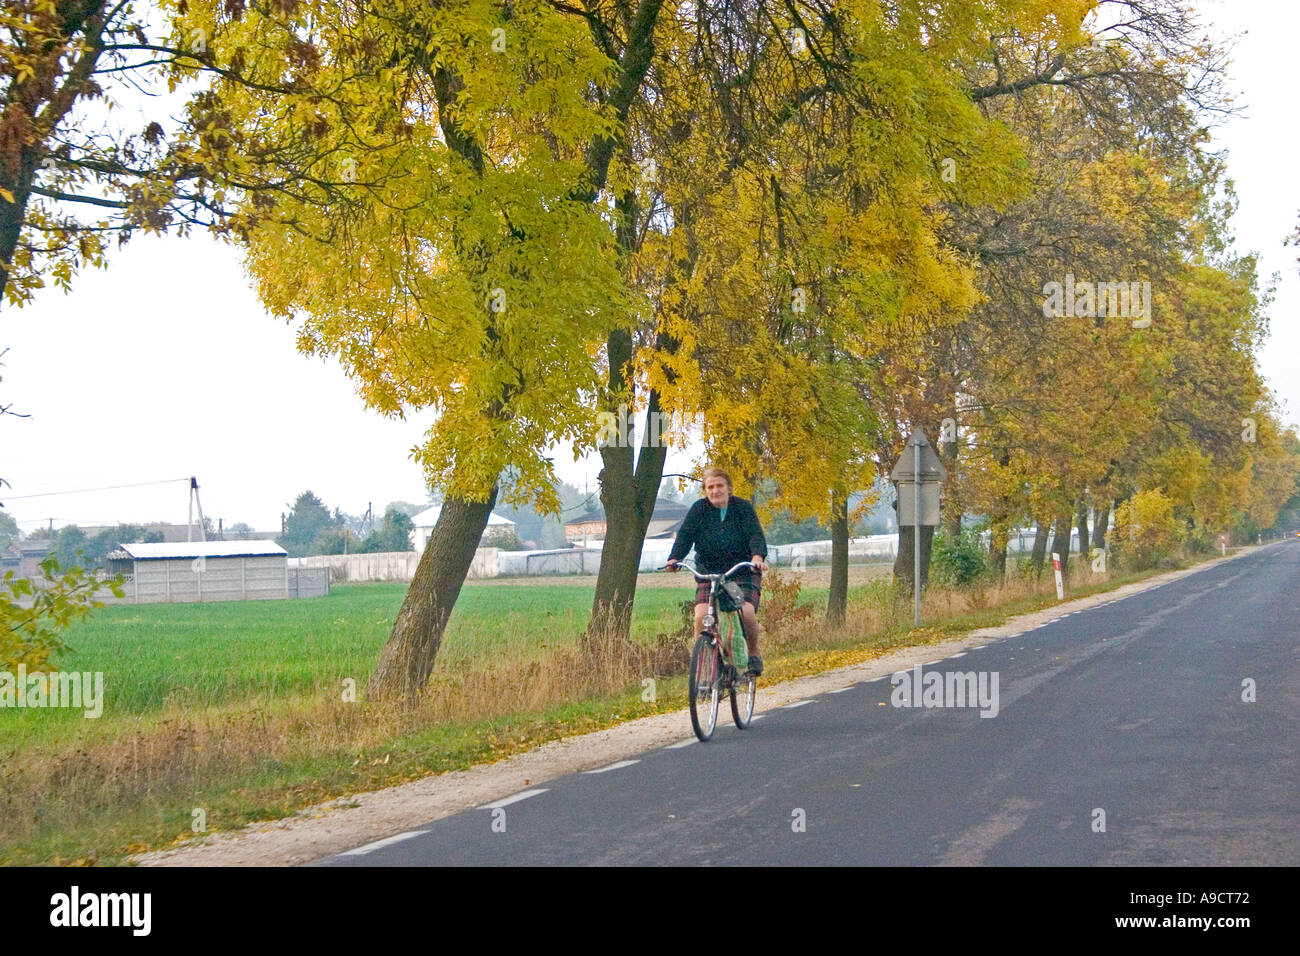 Mature woman riding bicycle down lonely tree lined road. Highway 72 between Lodz and Rawa Maz. Poland Stock Photo